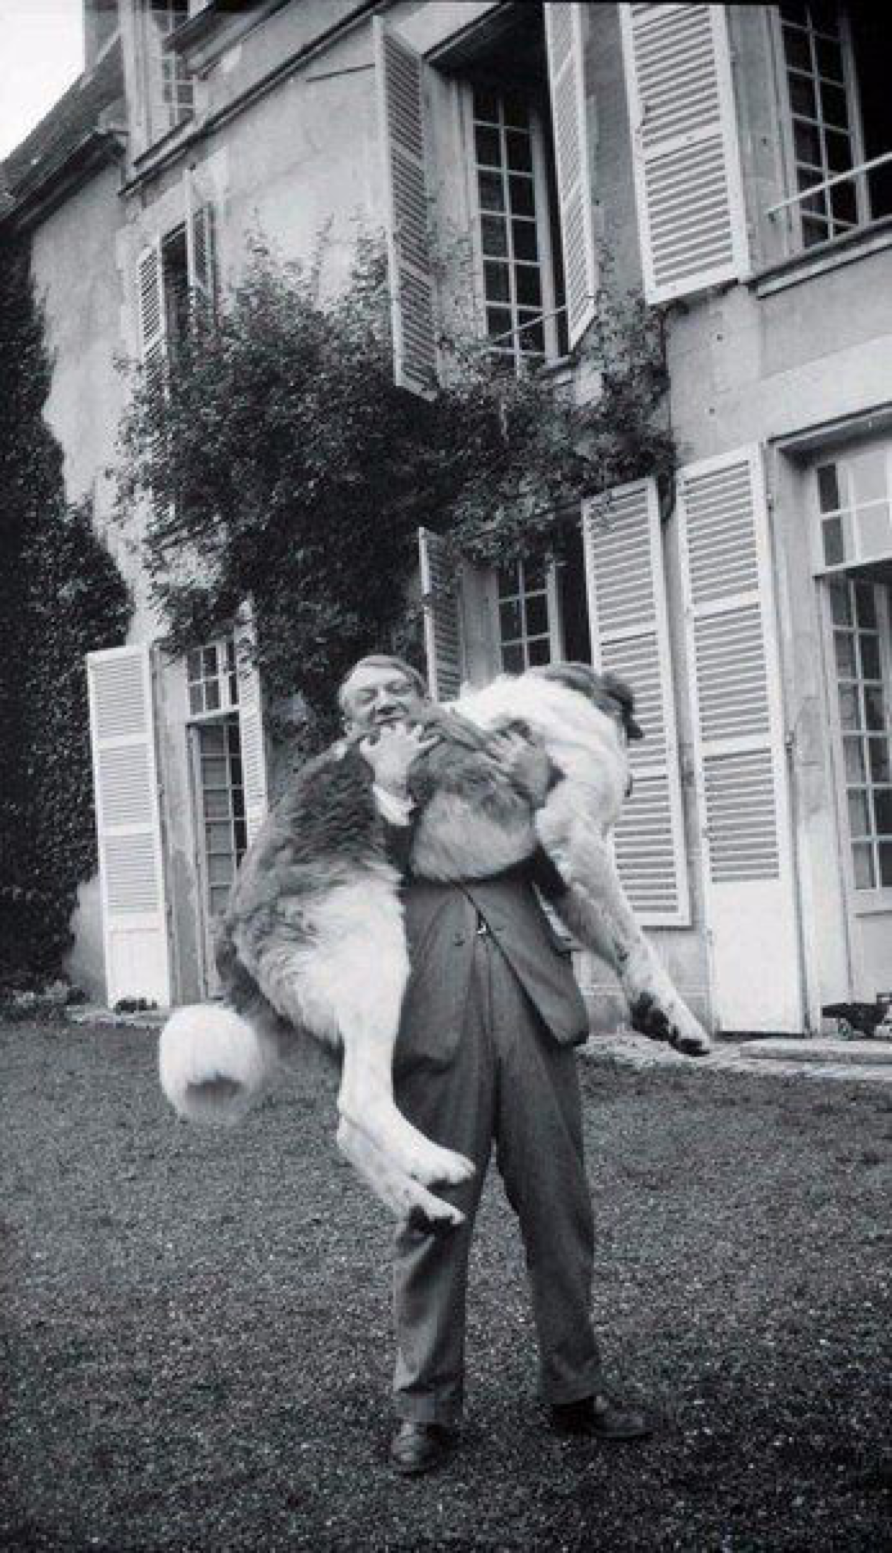 Pablo Picasso with his dog Bob, France, 1932